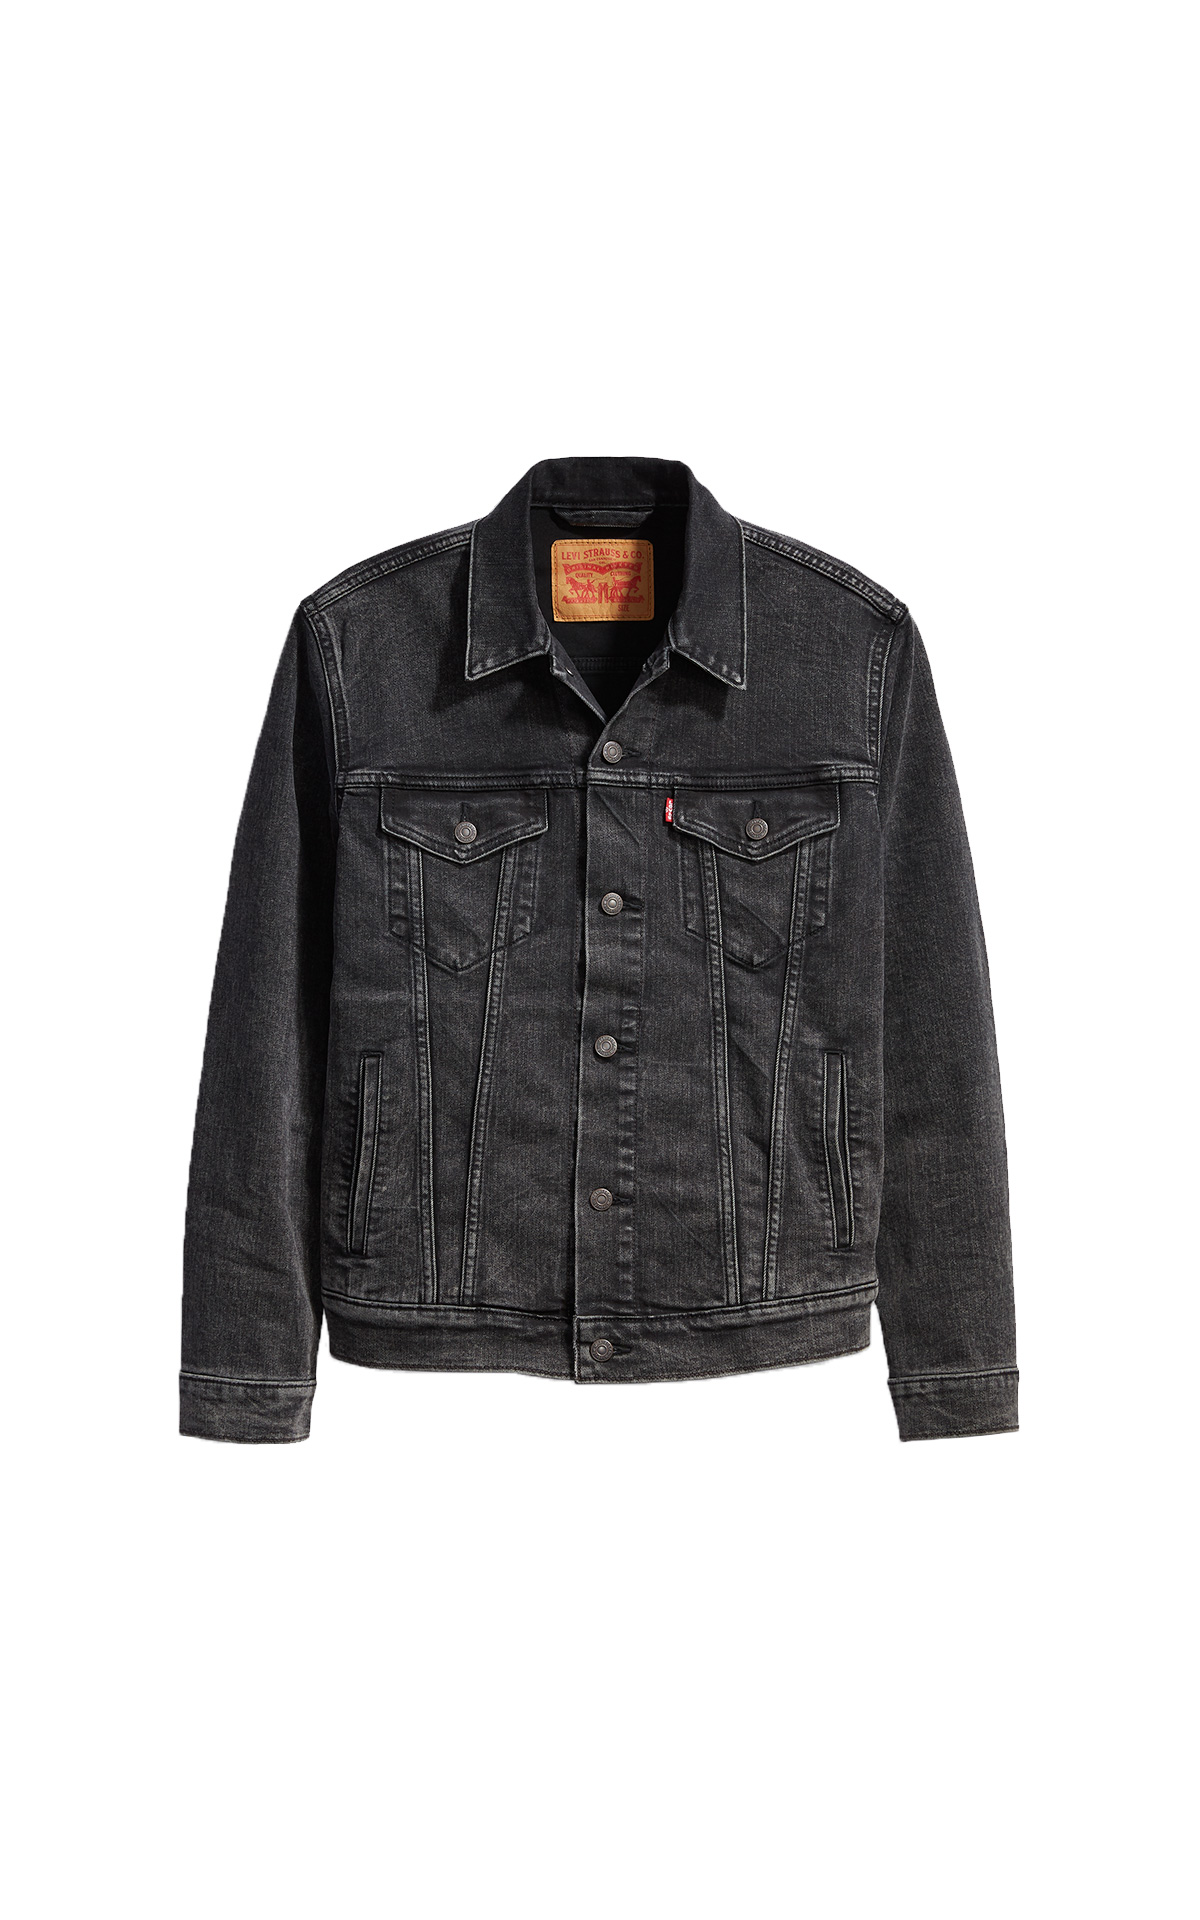 Black The trucker denim jacket unisex Levi's